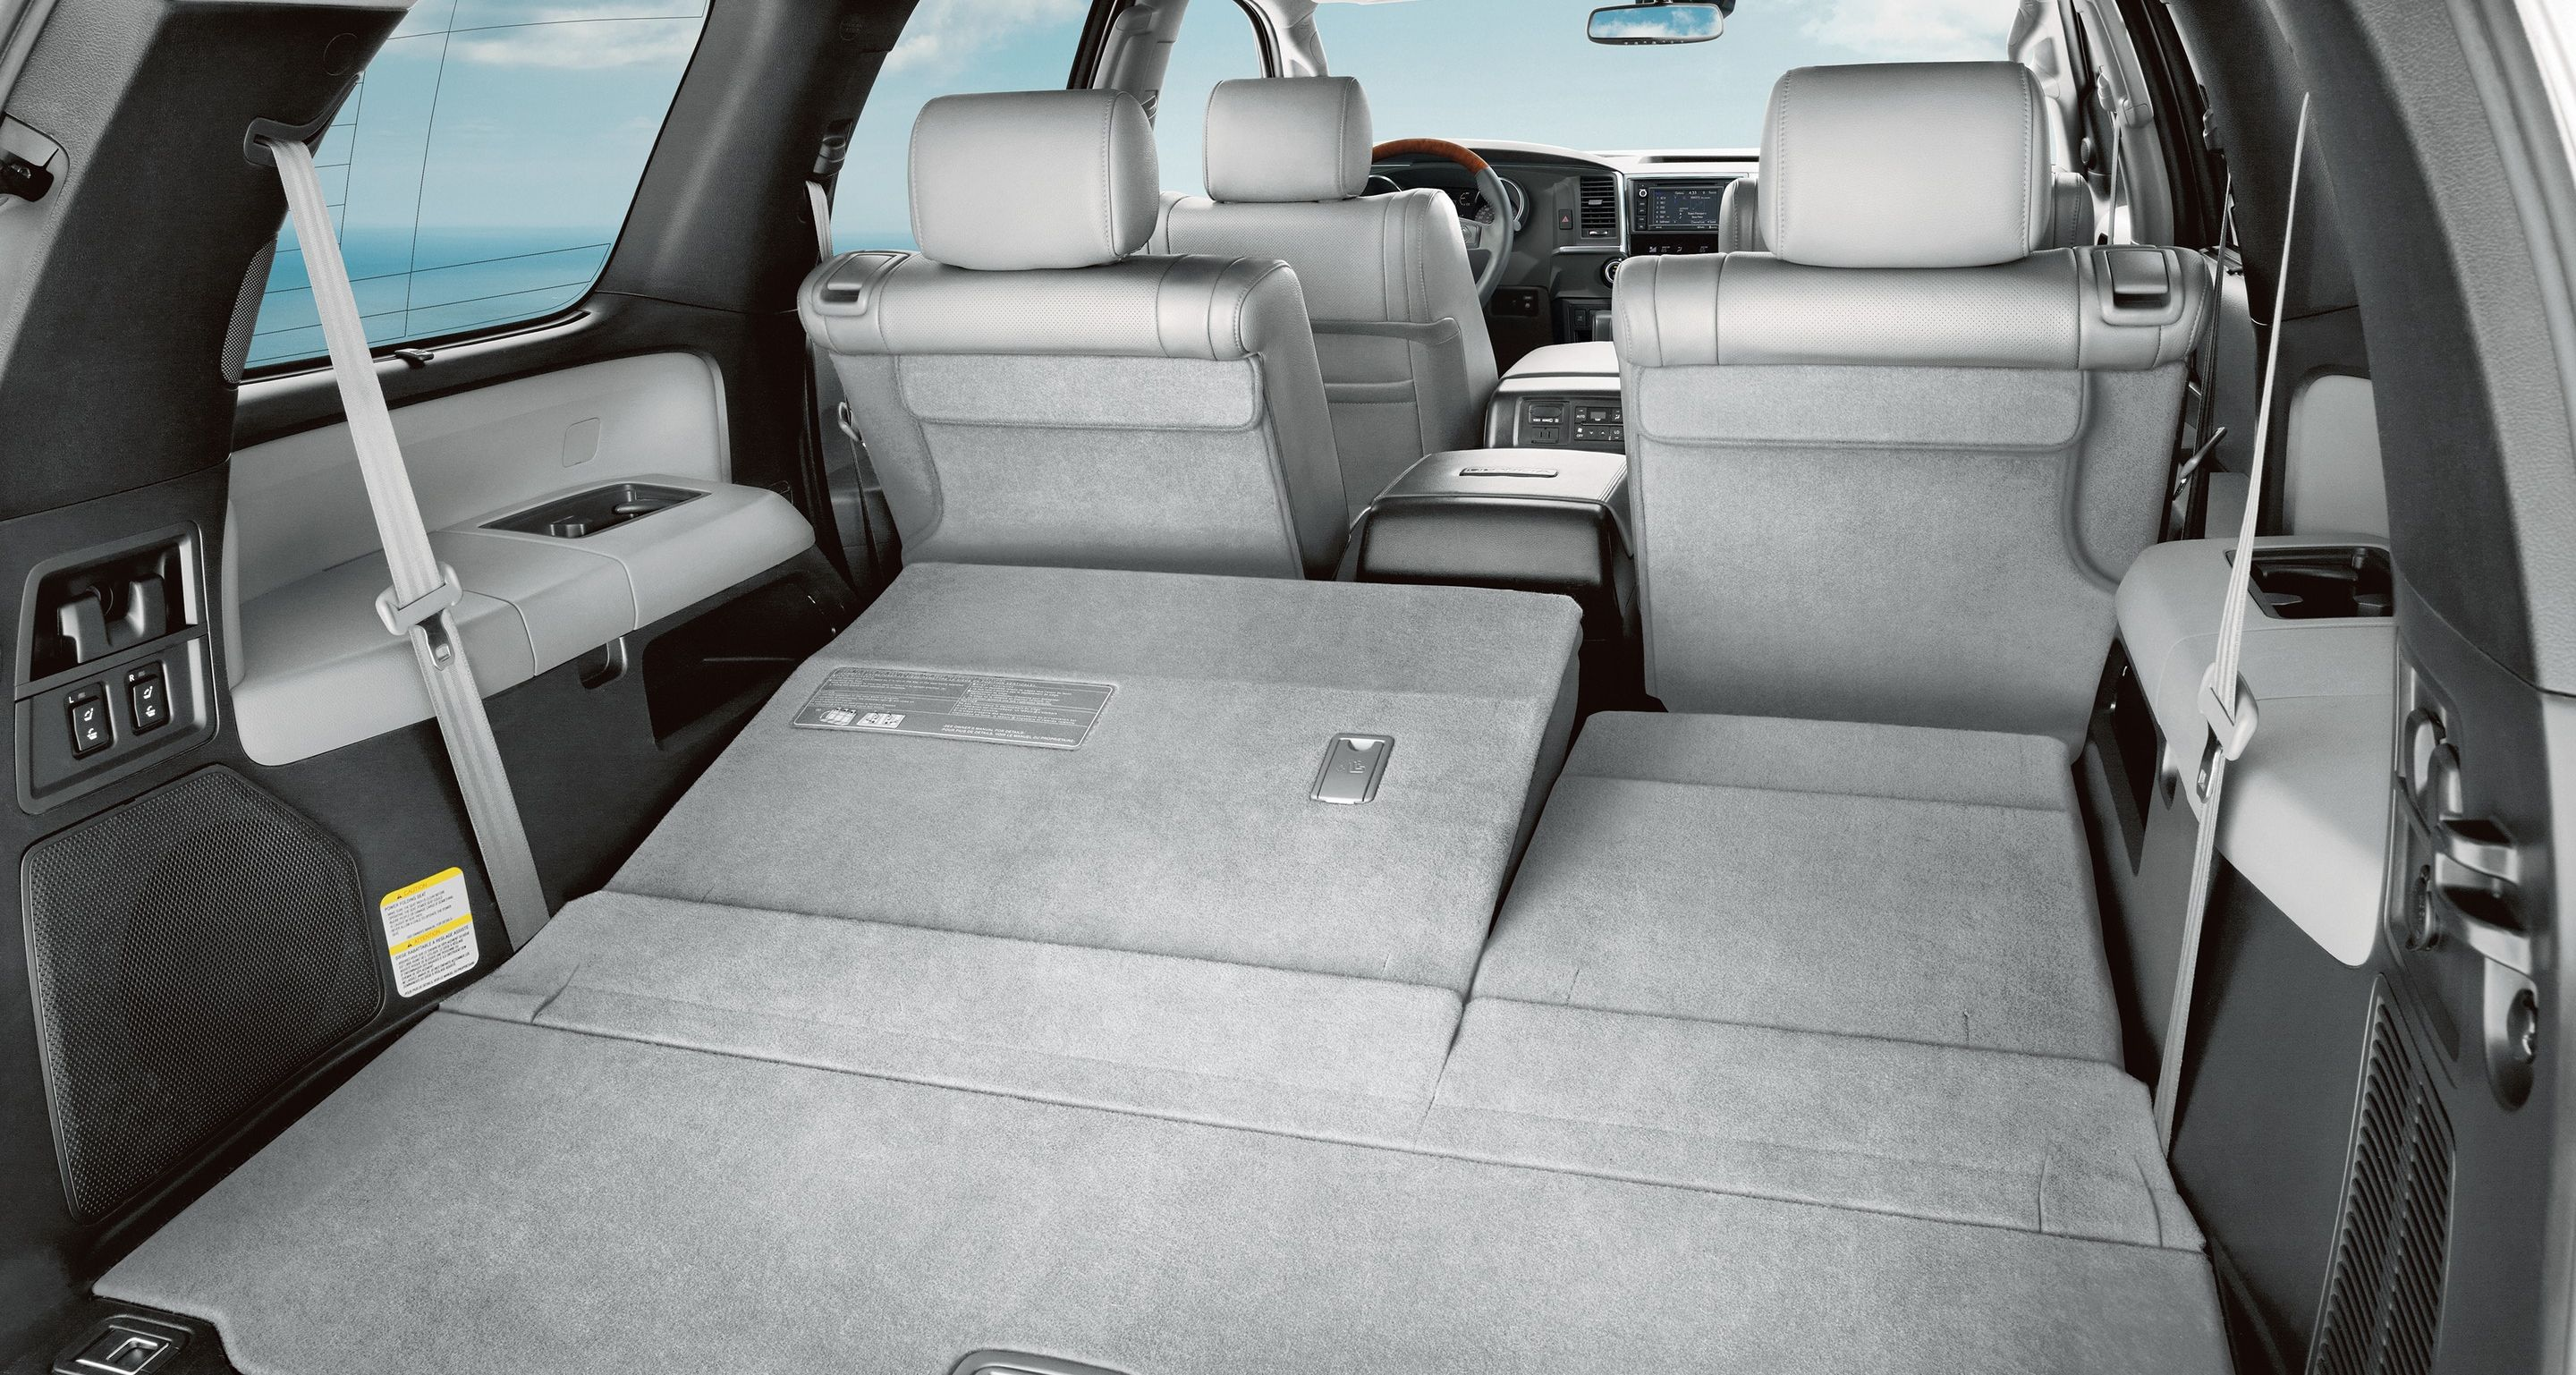 Storage Capacity of the 2019 Sienna